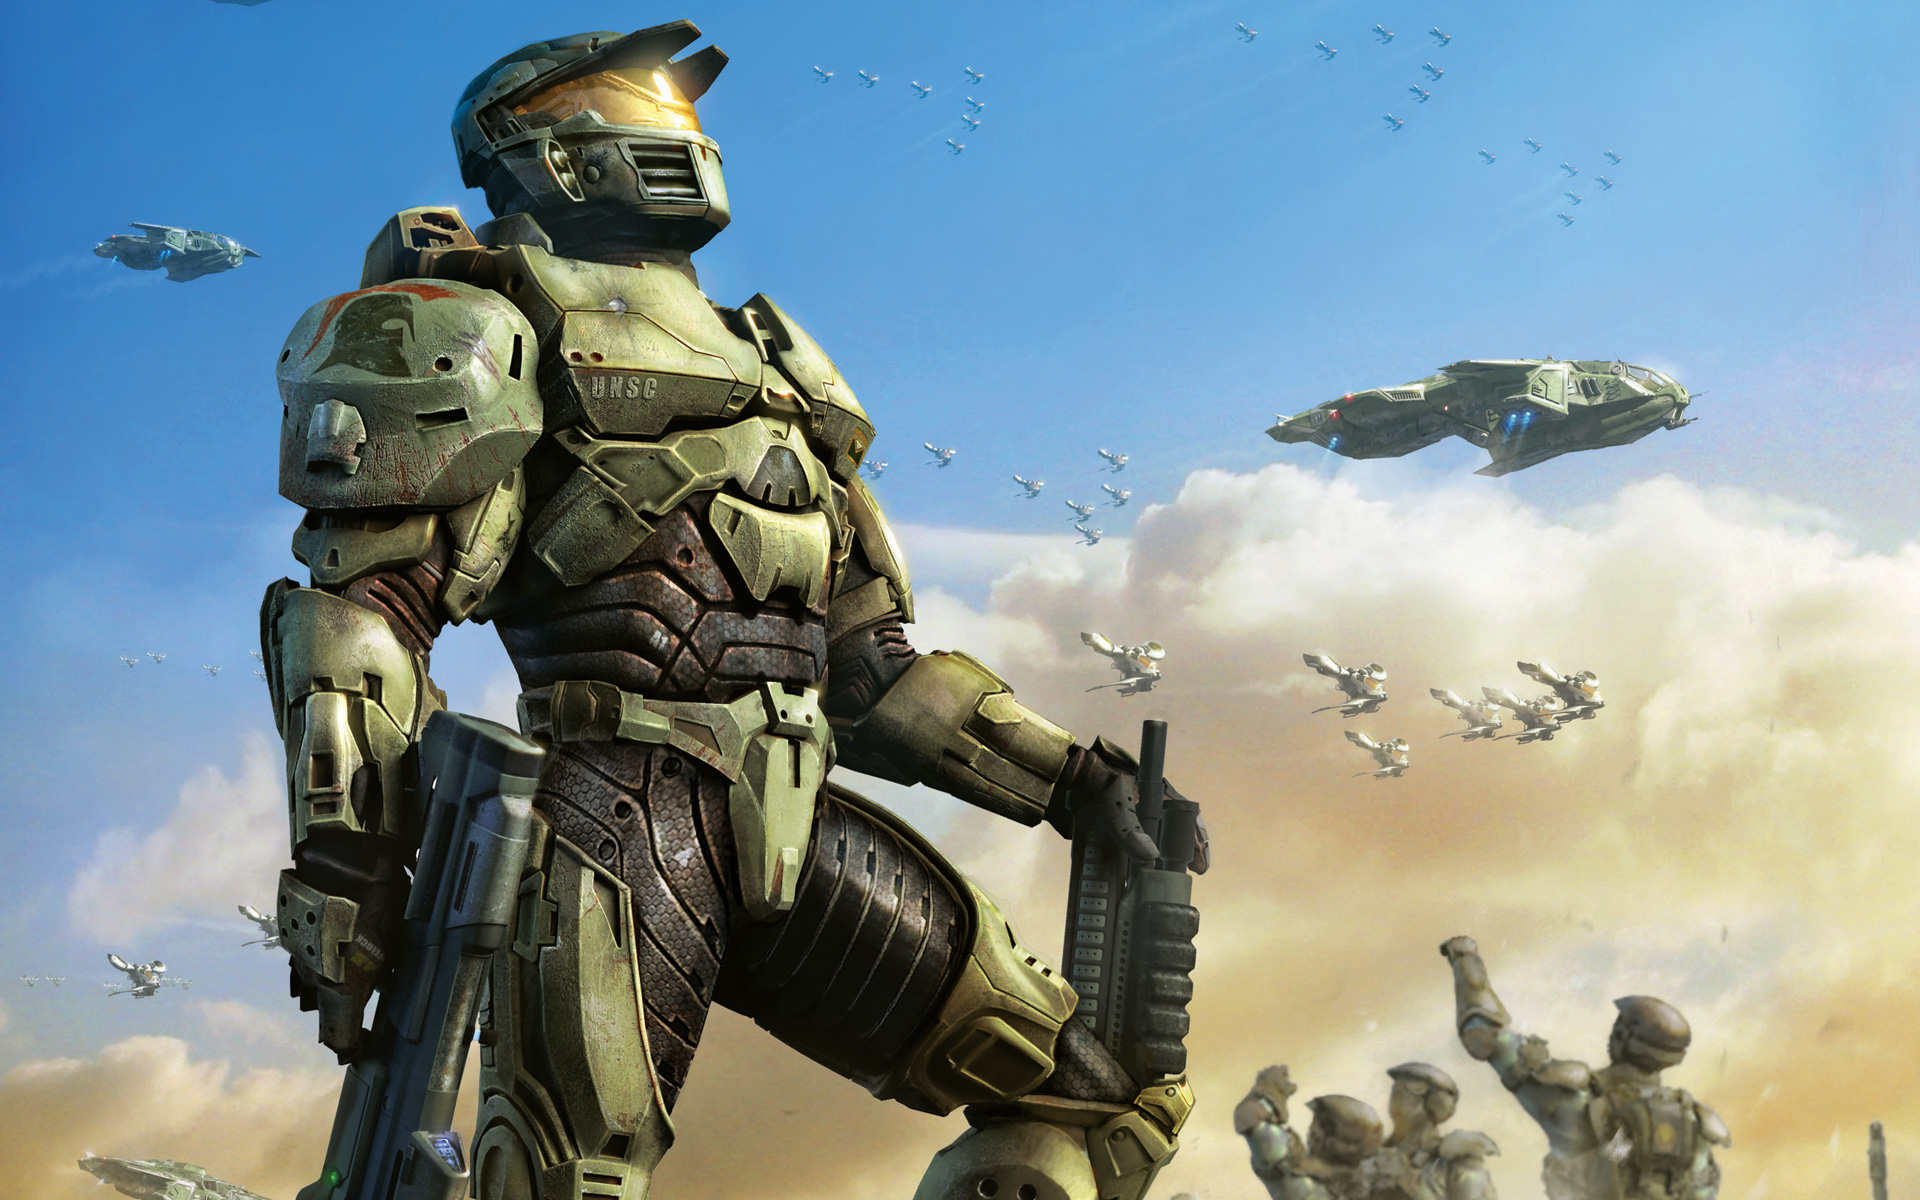 Halo Wars Wallpaper in 1920x1200